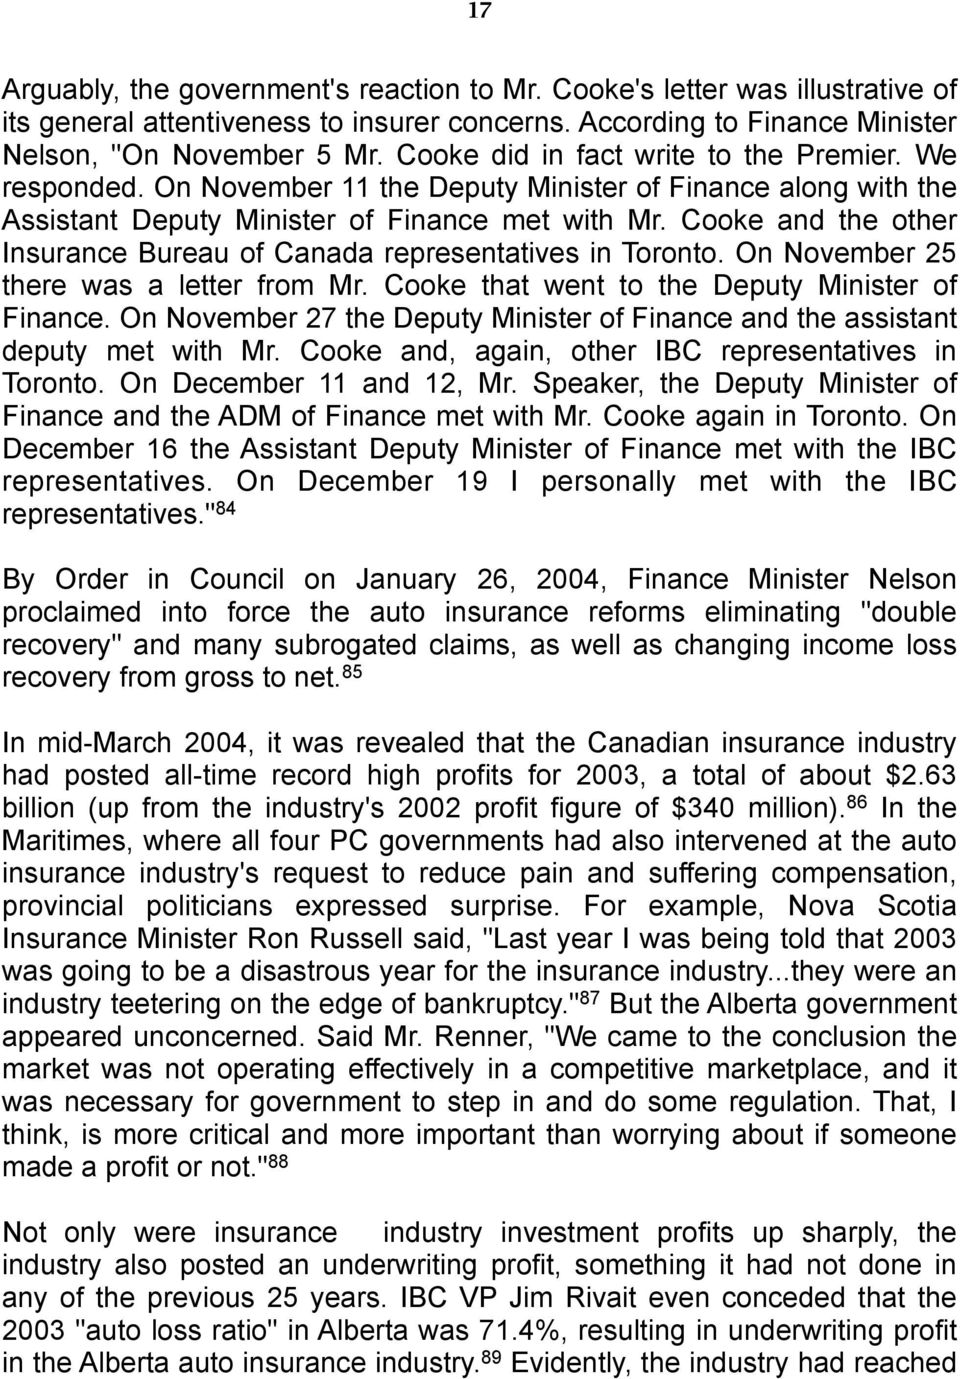 Cooke and the other Insurance Bureau of Canada representatives in Toronto. On November 25 there was a letter from Mr. Cooke that went to the Deputy Minister of Finance.